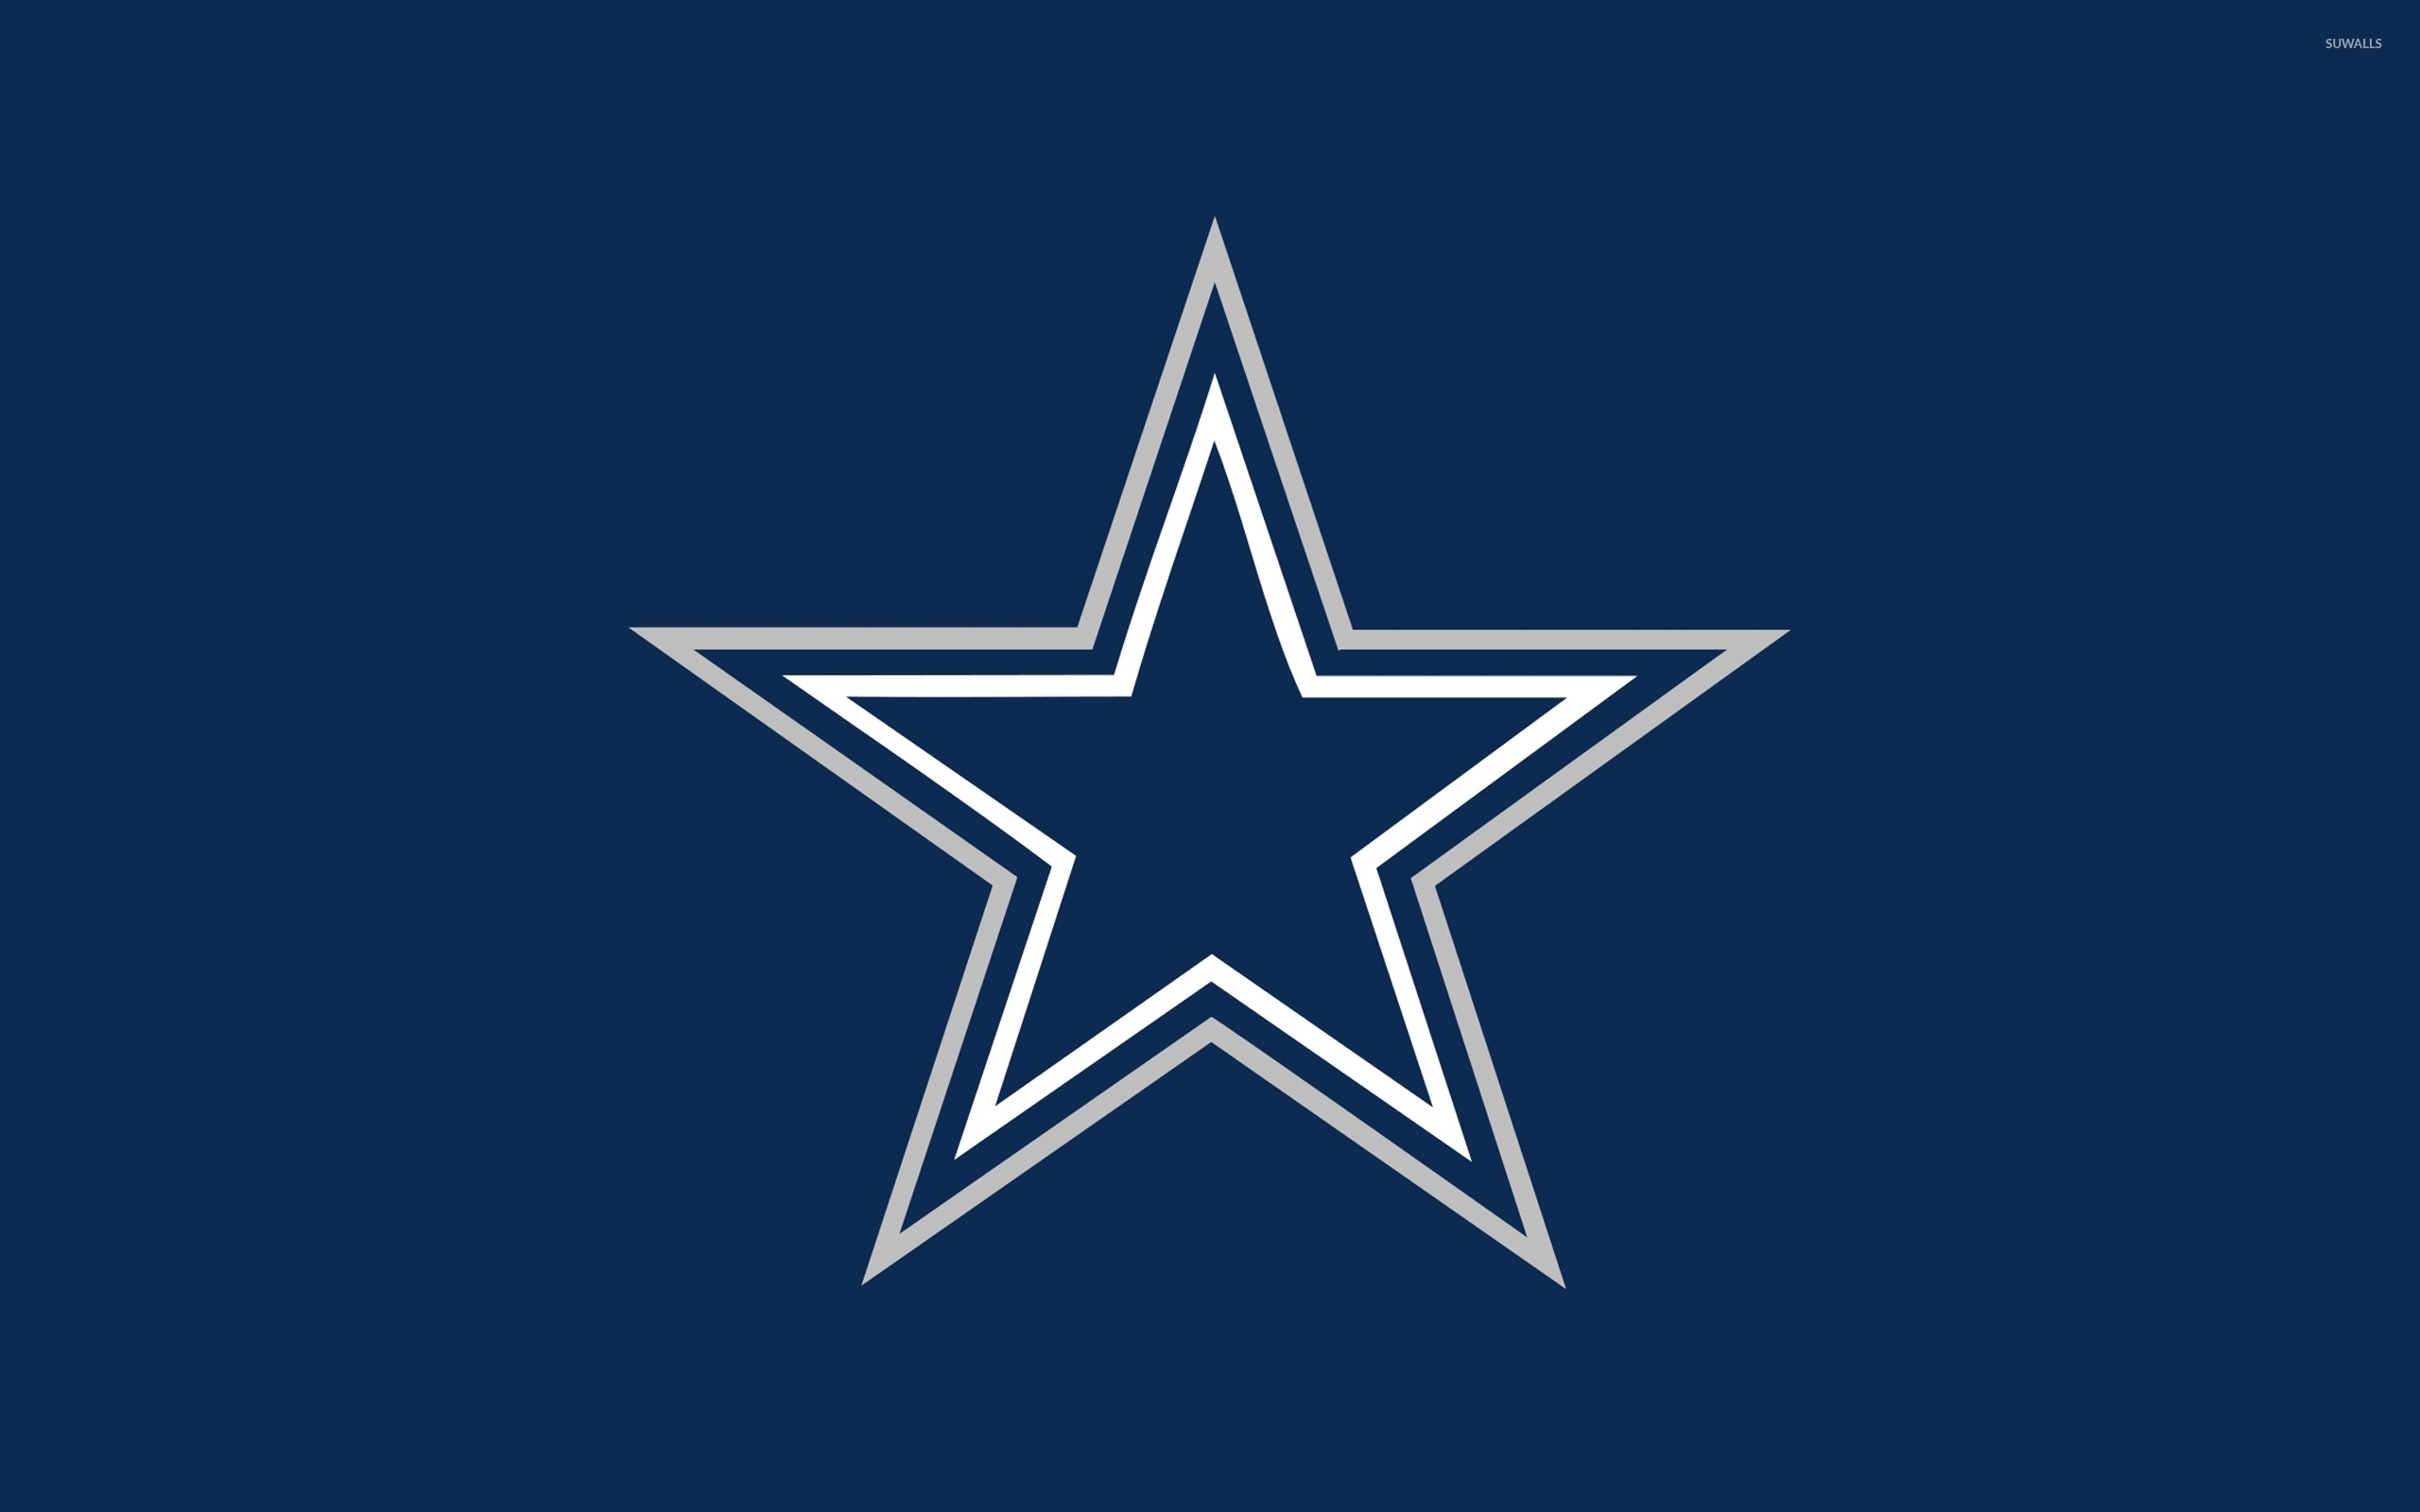 Get the latest Dallas Cowboys news scores stats standings rumors and more from ESPN